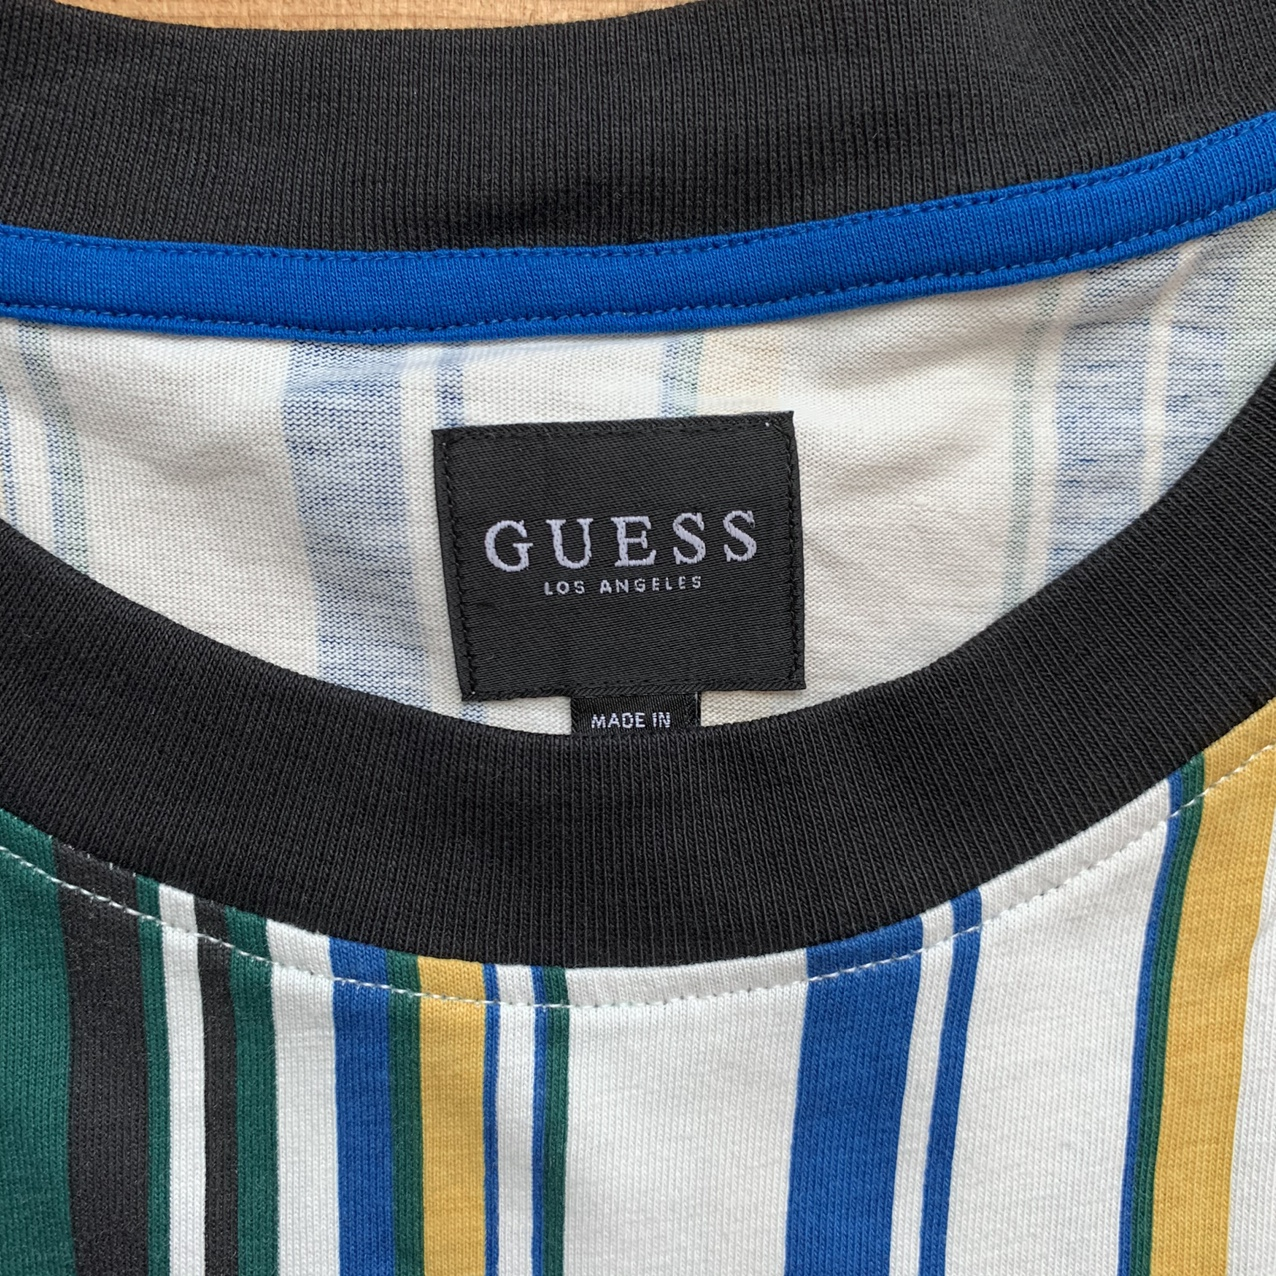 Product Image 3 - Beautiful guess striped tee #streetwear #vintage